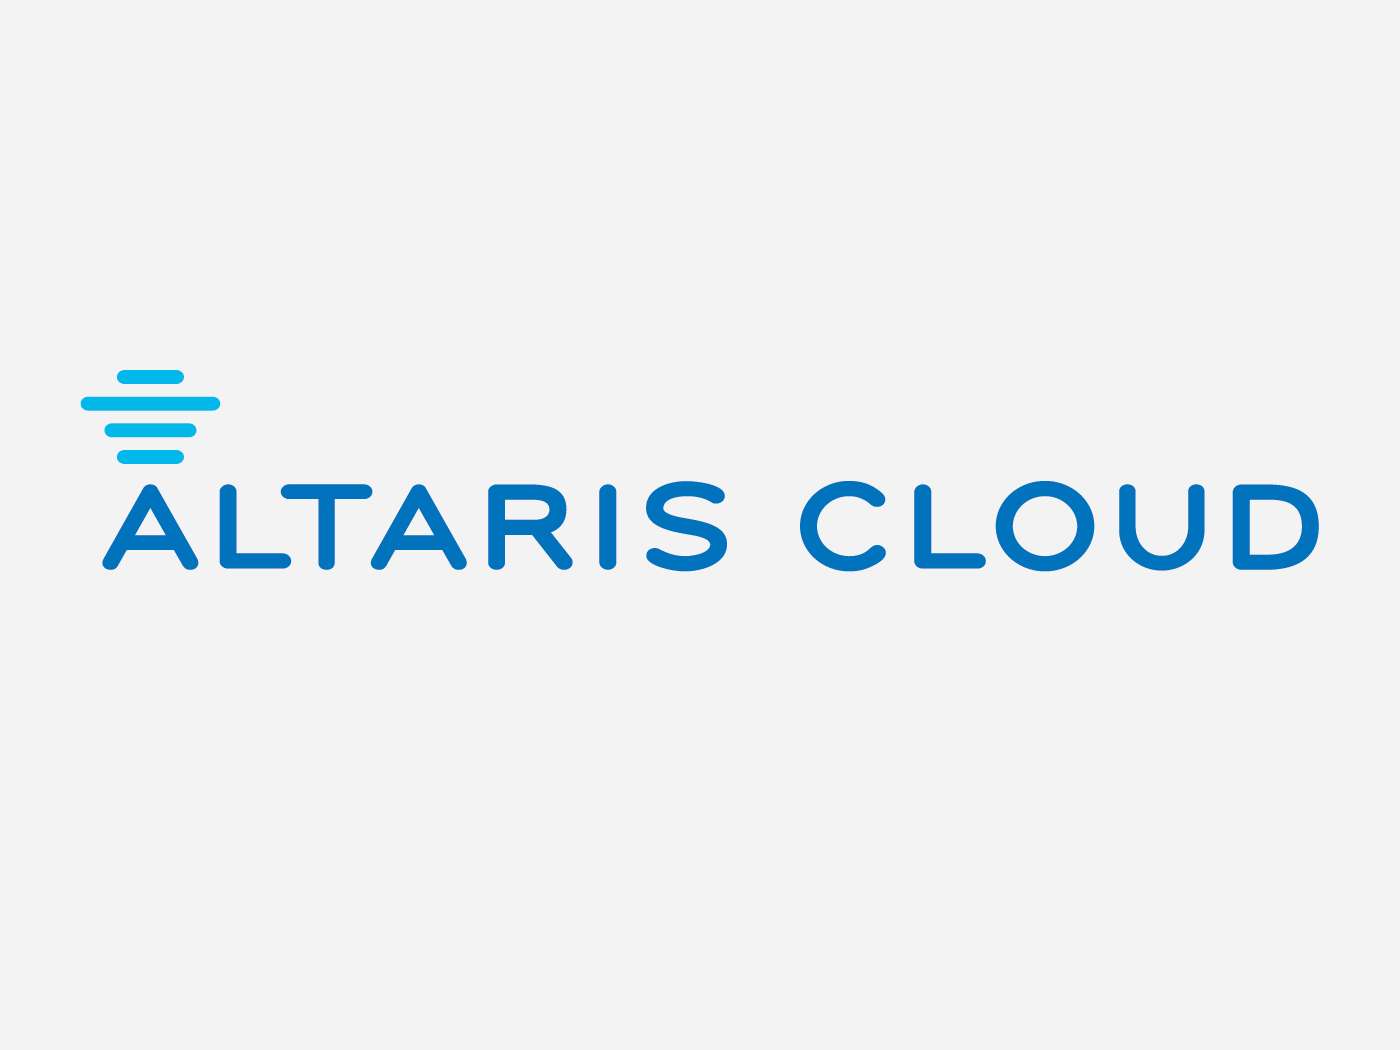 Altaris Cloud